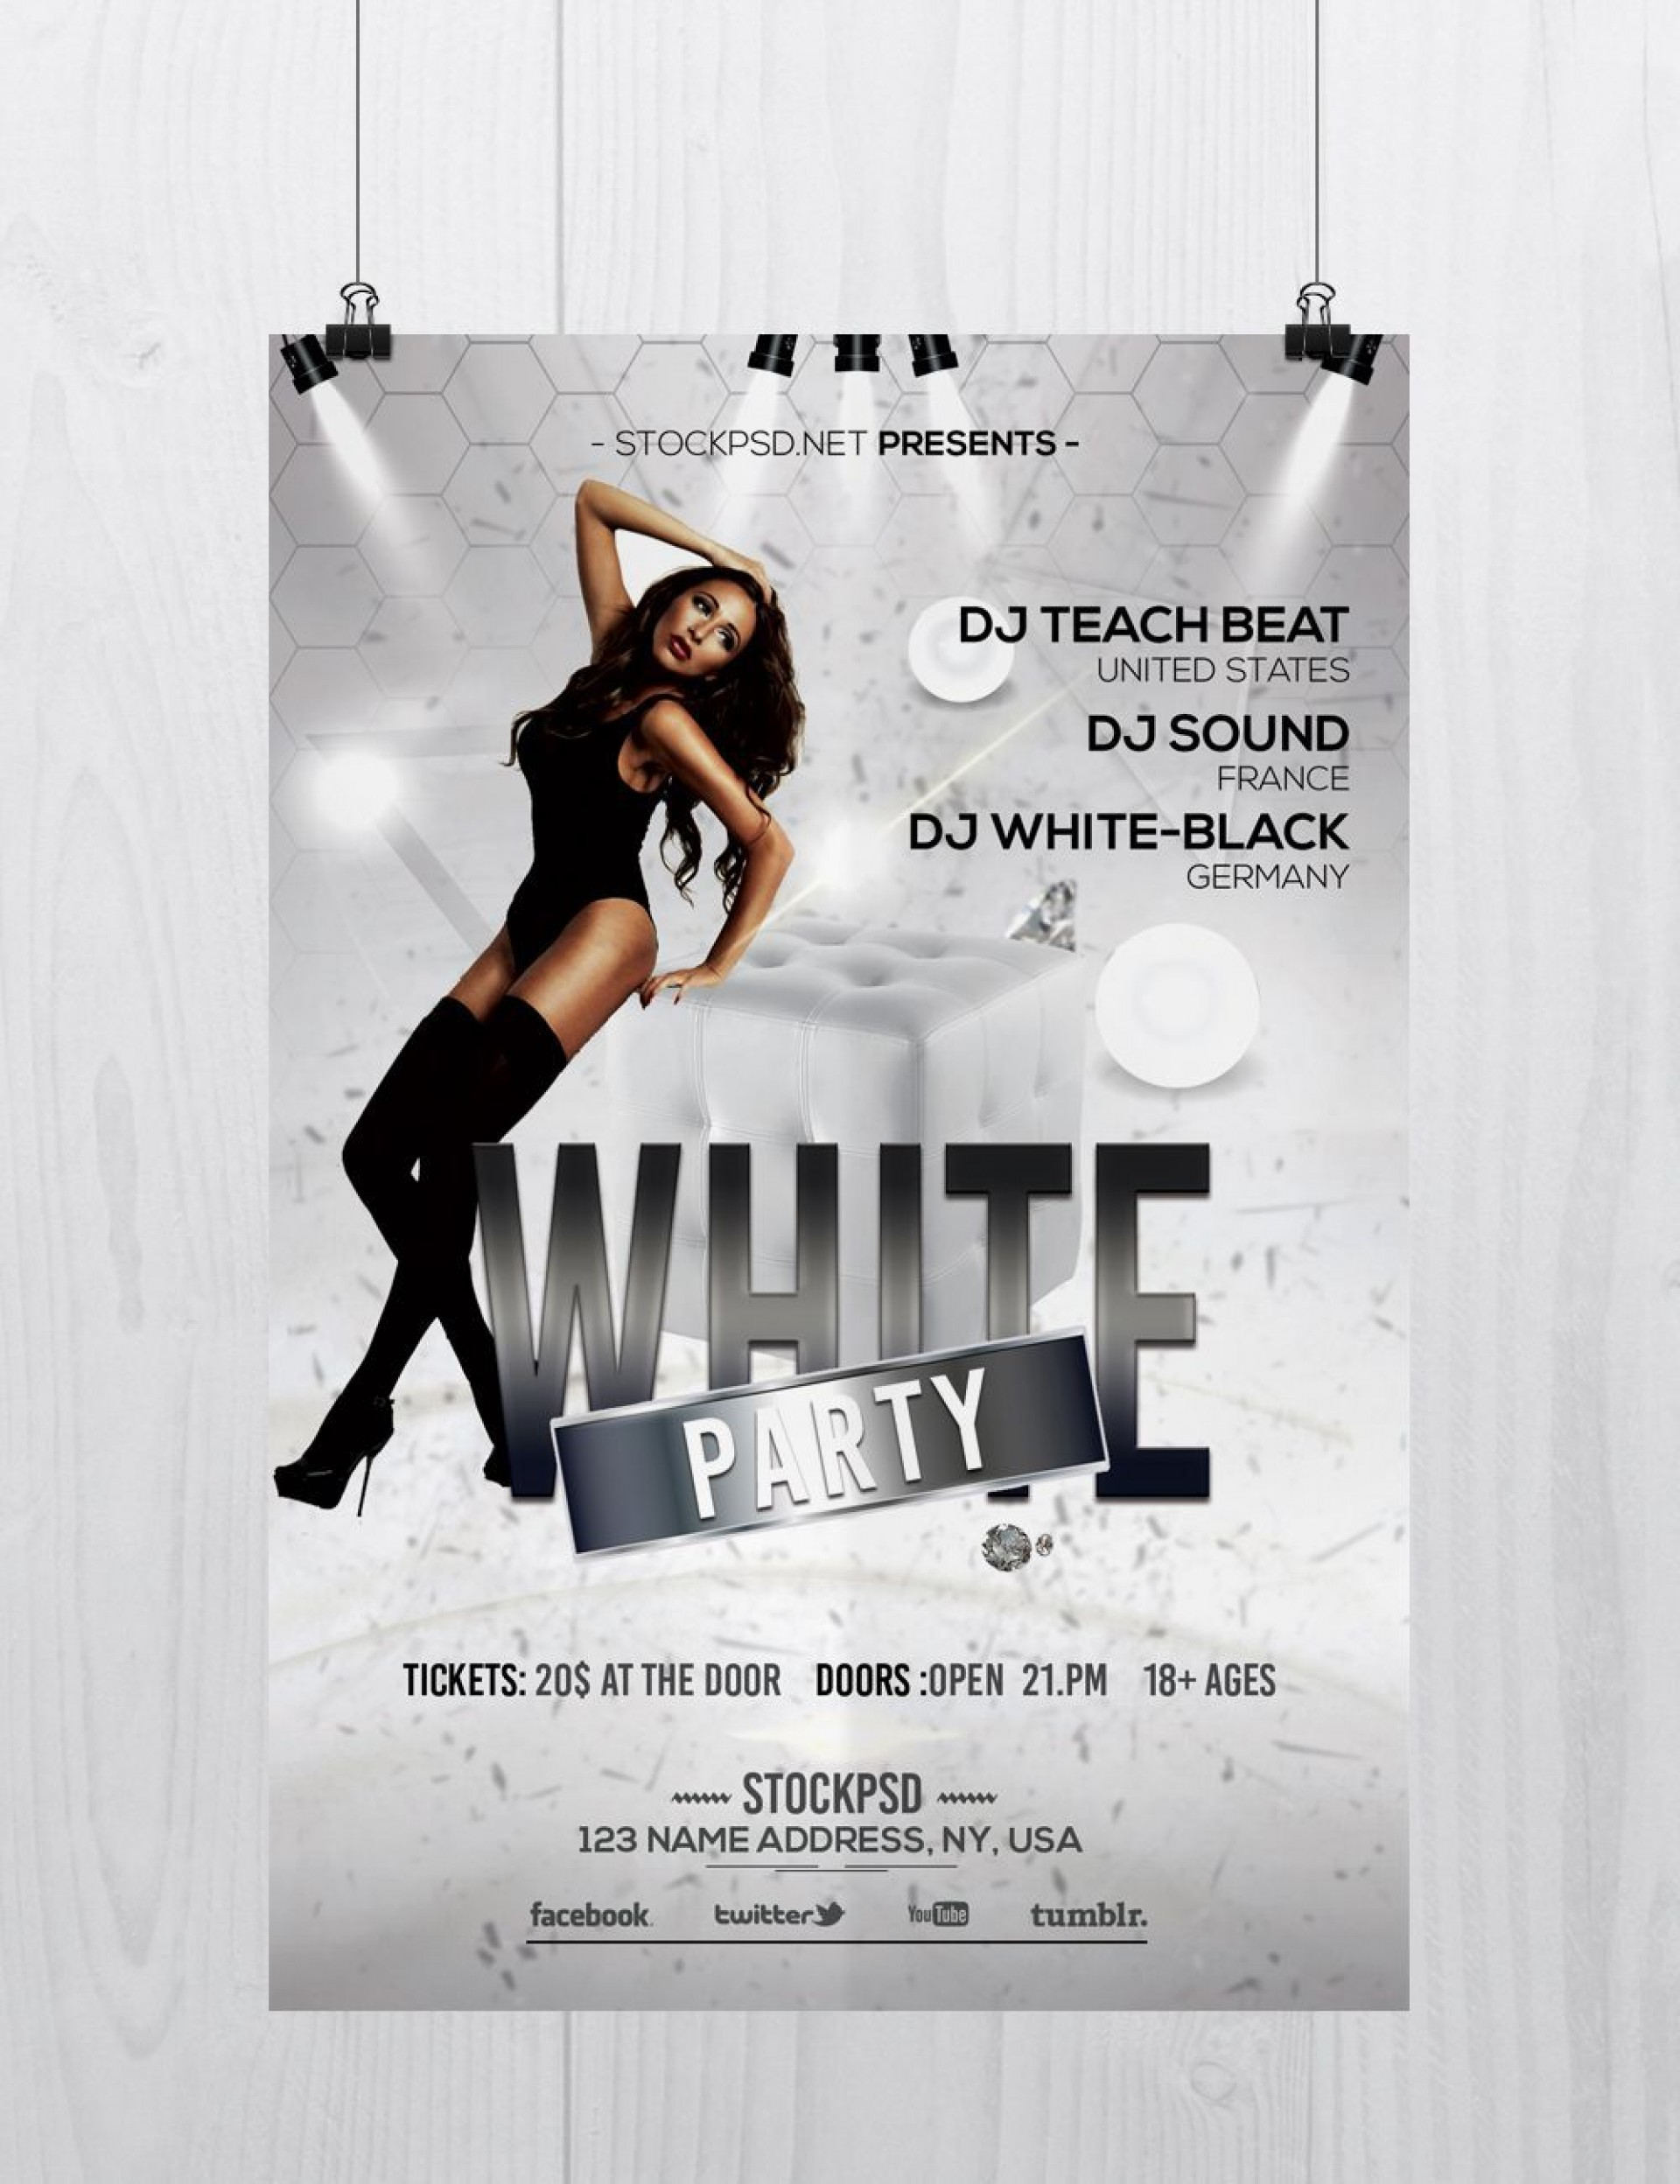 003 Unforgettable Free Party Flyer Template For Photoshop Photo  Pool Psd Download1920